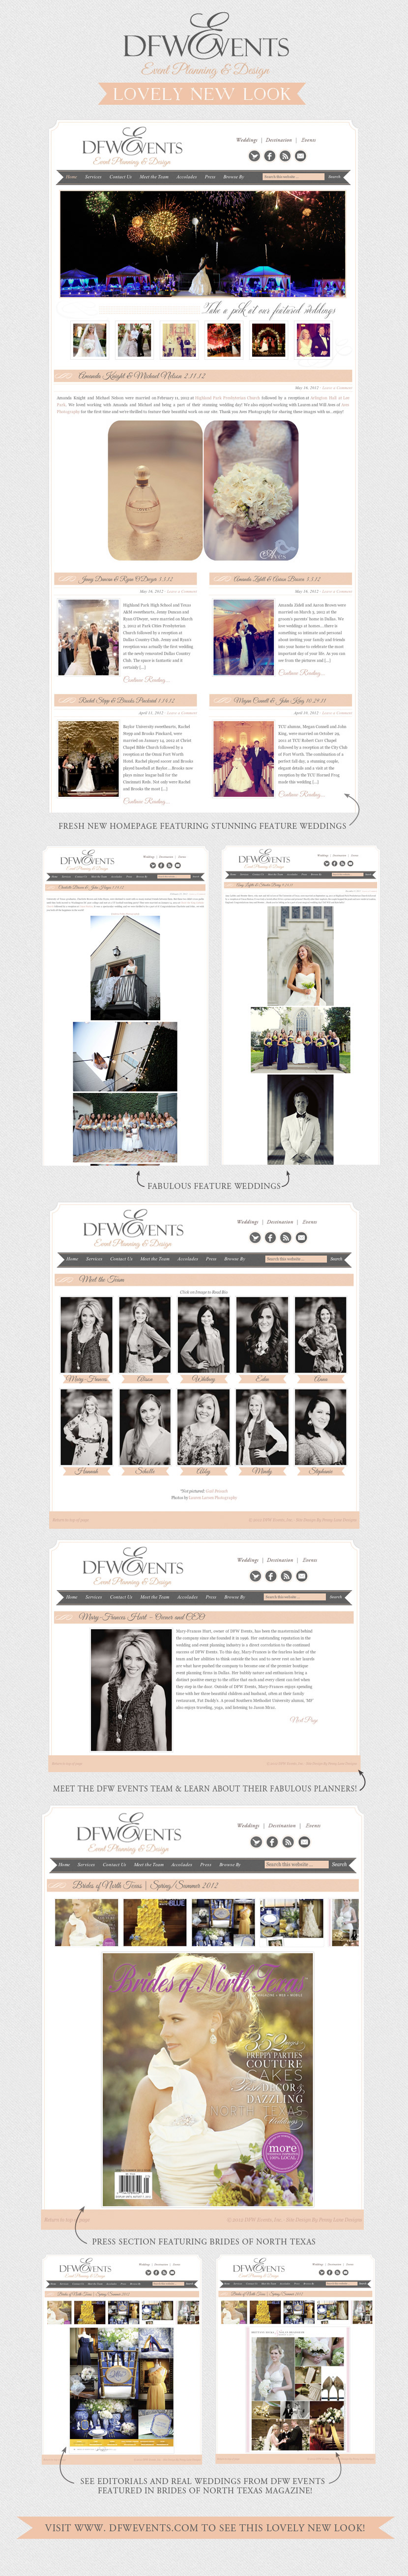 DFW Events new website